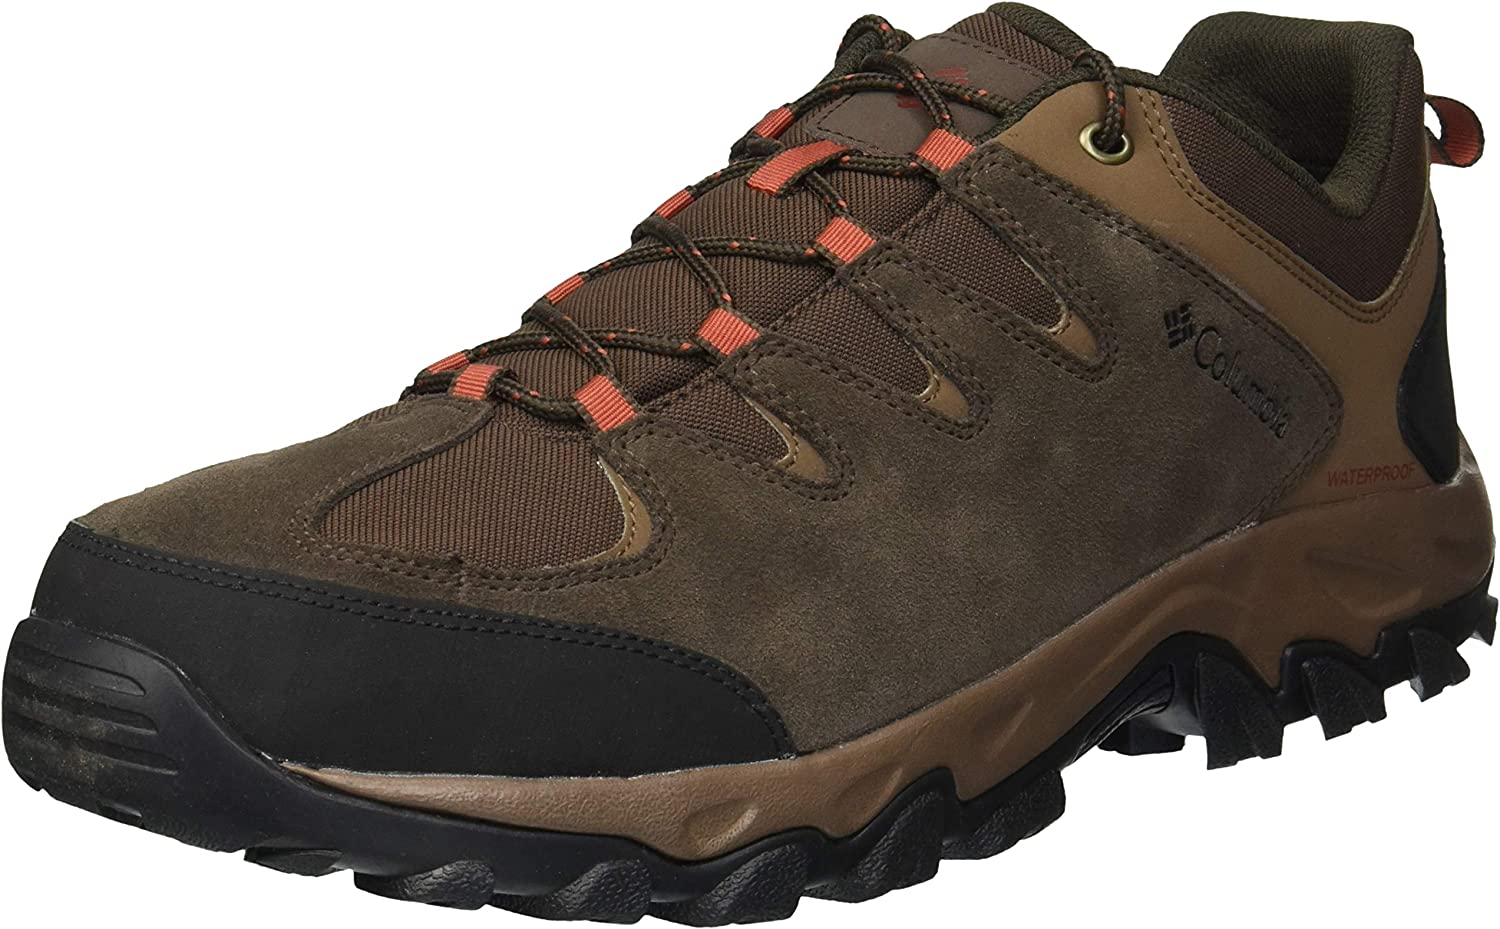 Columbia Men s Buxton Peak Waterproof Hiking Shoe, Breathable, High-Traction Grip